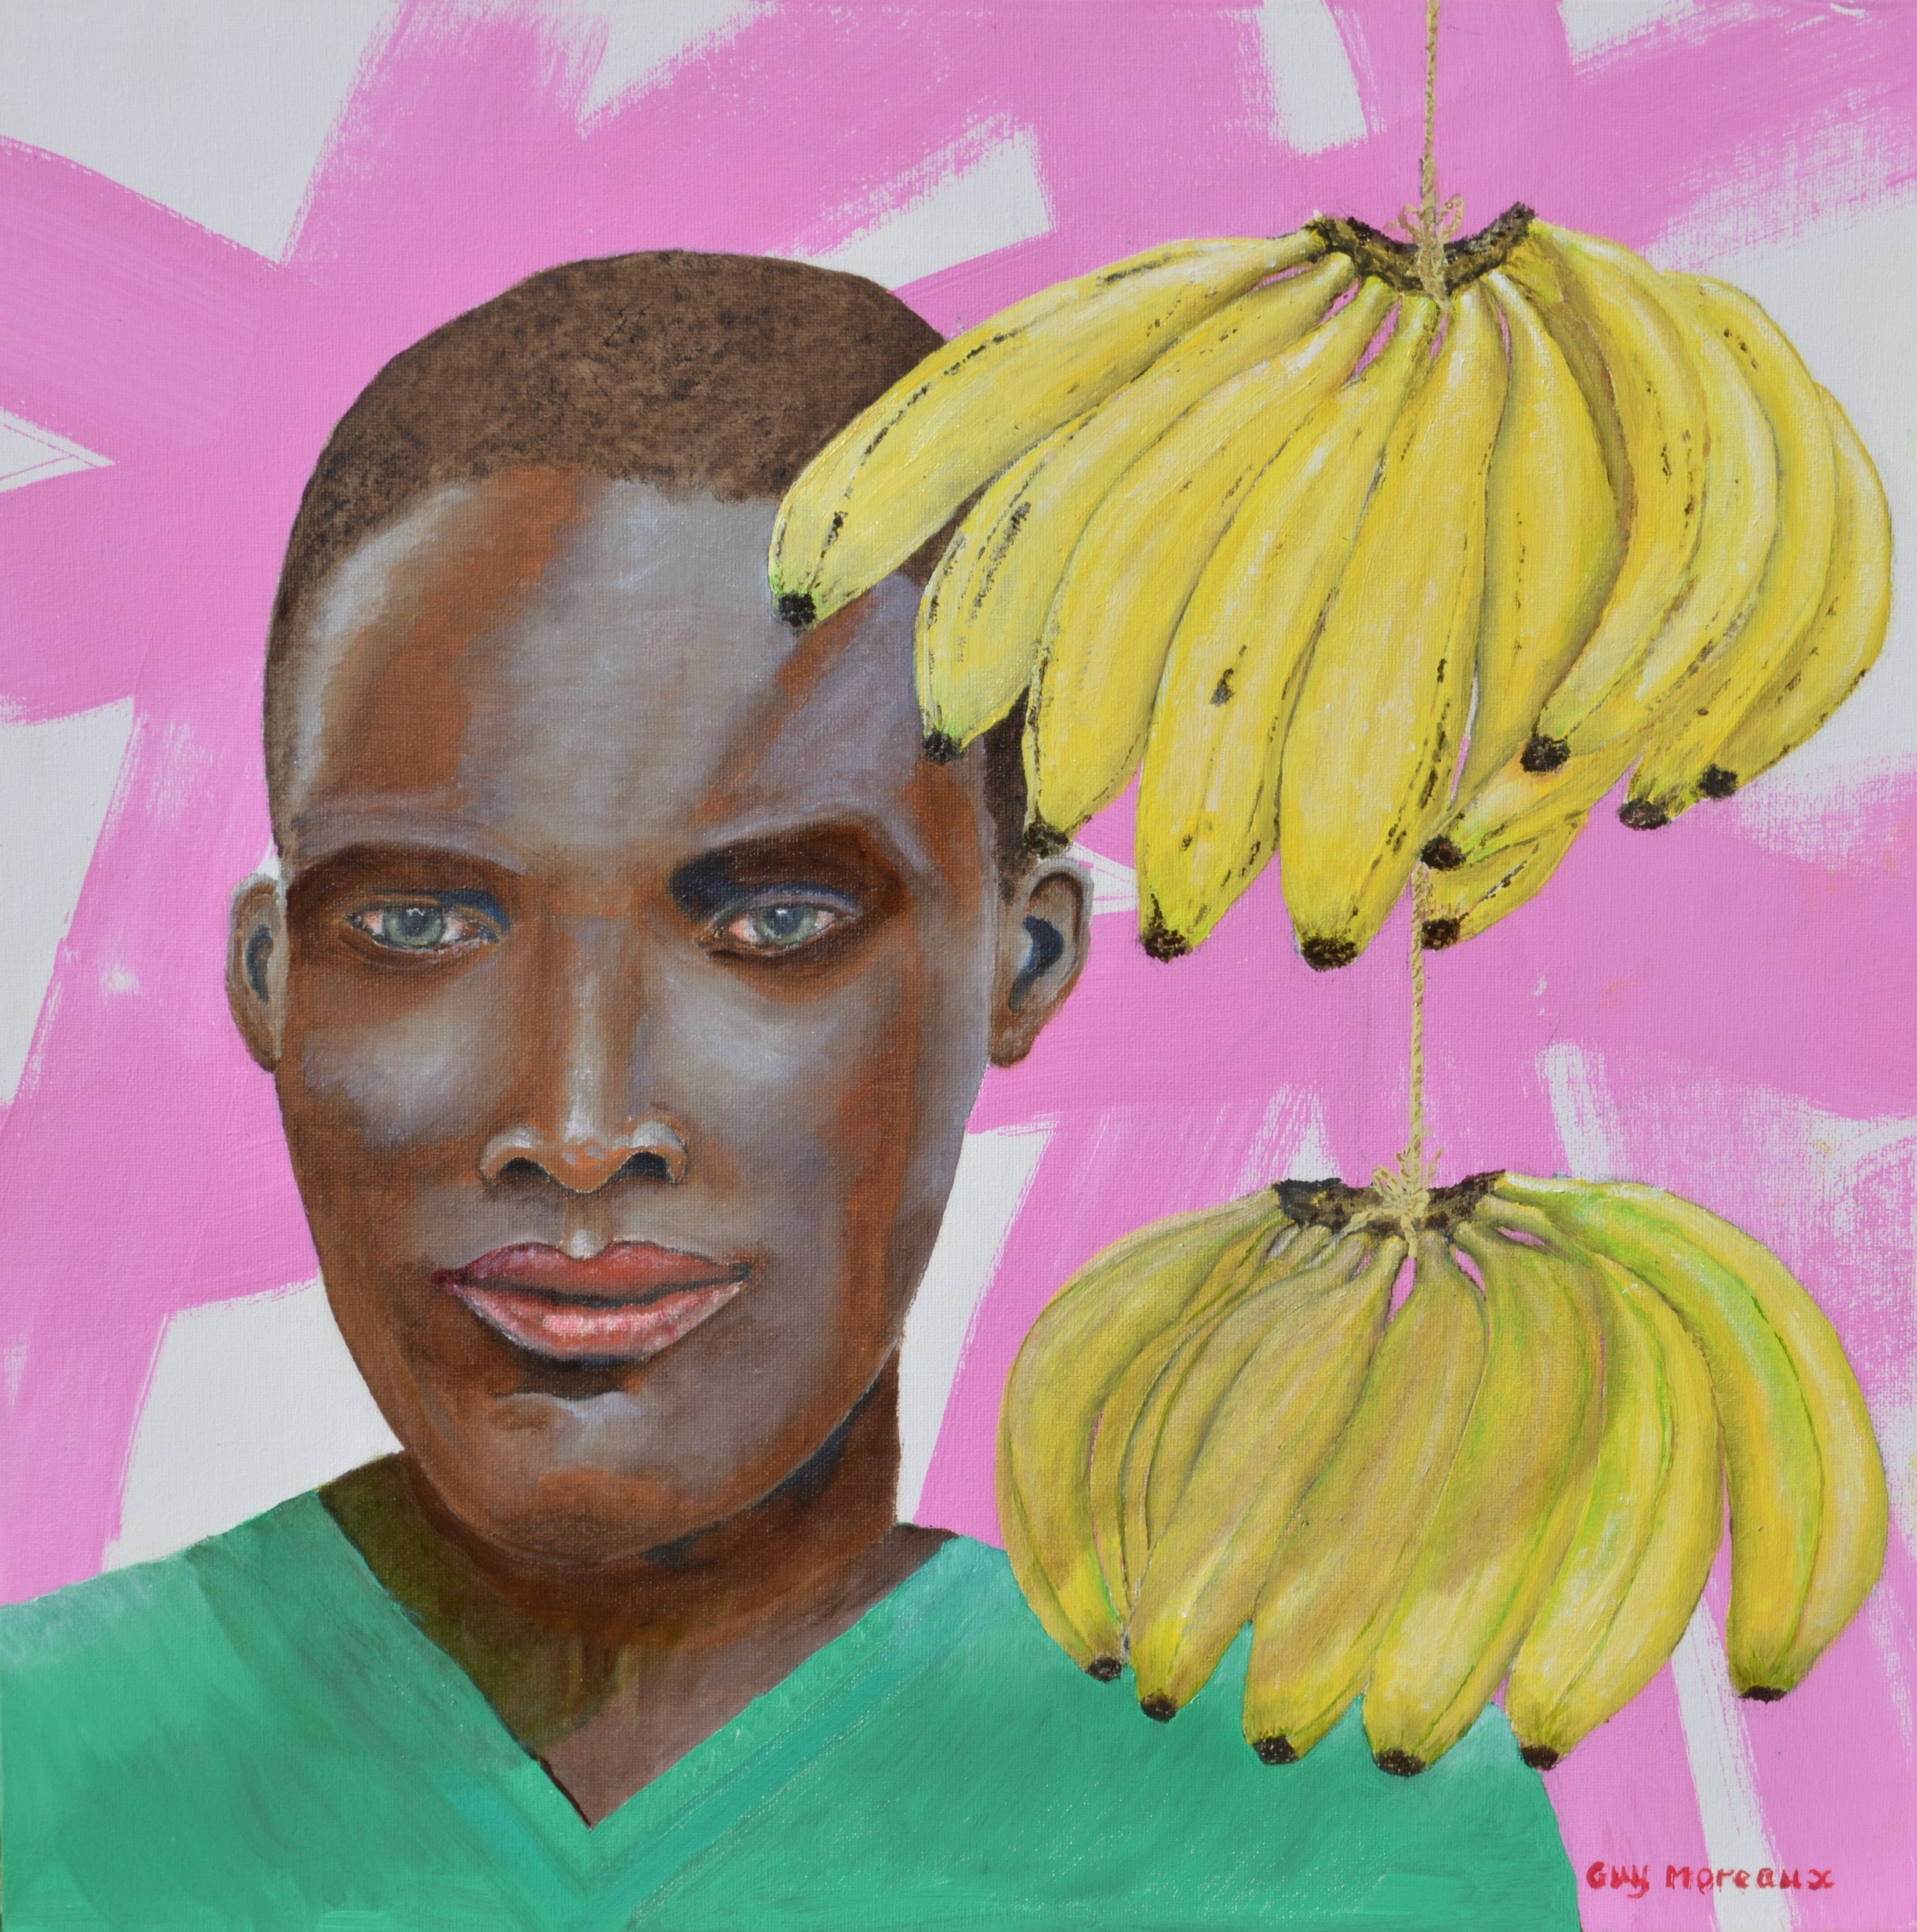 Guy Octaaf Moreaux; Mary The Banana Lady, 2020, Original Painting Oil, 50 x 50 cm. Artwork description: 241 Bananas are sold along the streets and roads in Kenya, hung on a bit of string.  This beauty is selling bananas.Acrylic and oil paint on canvasboard. ...